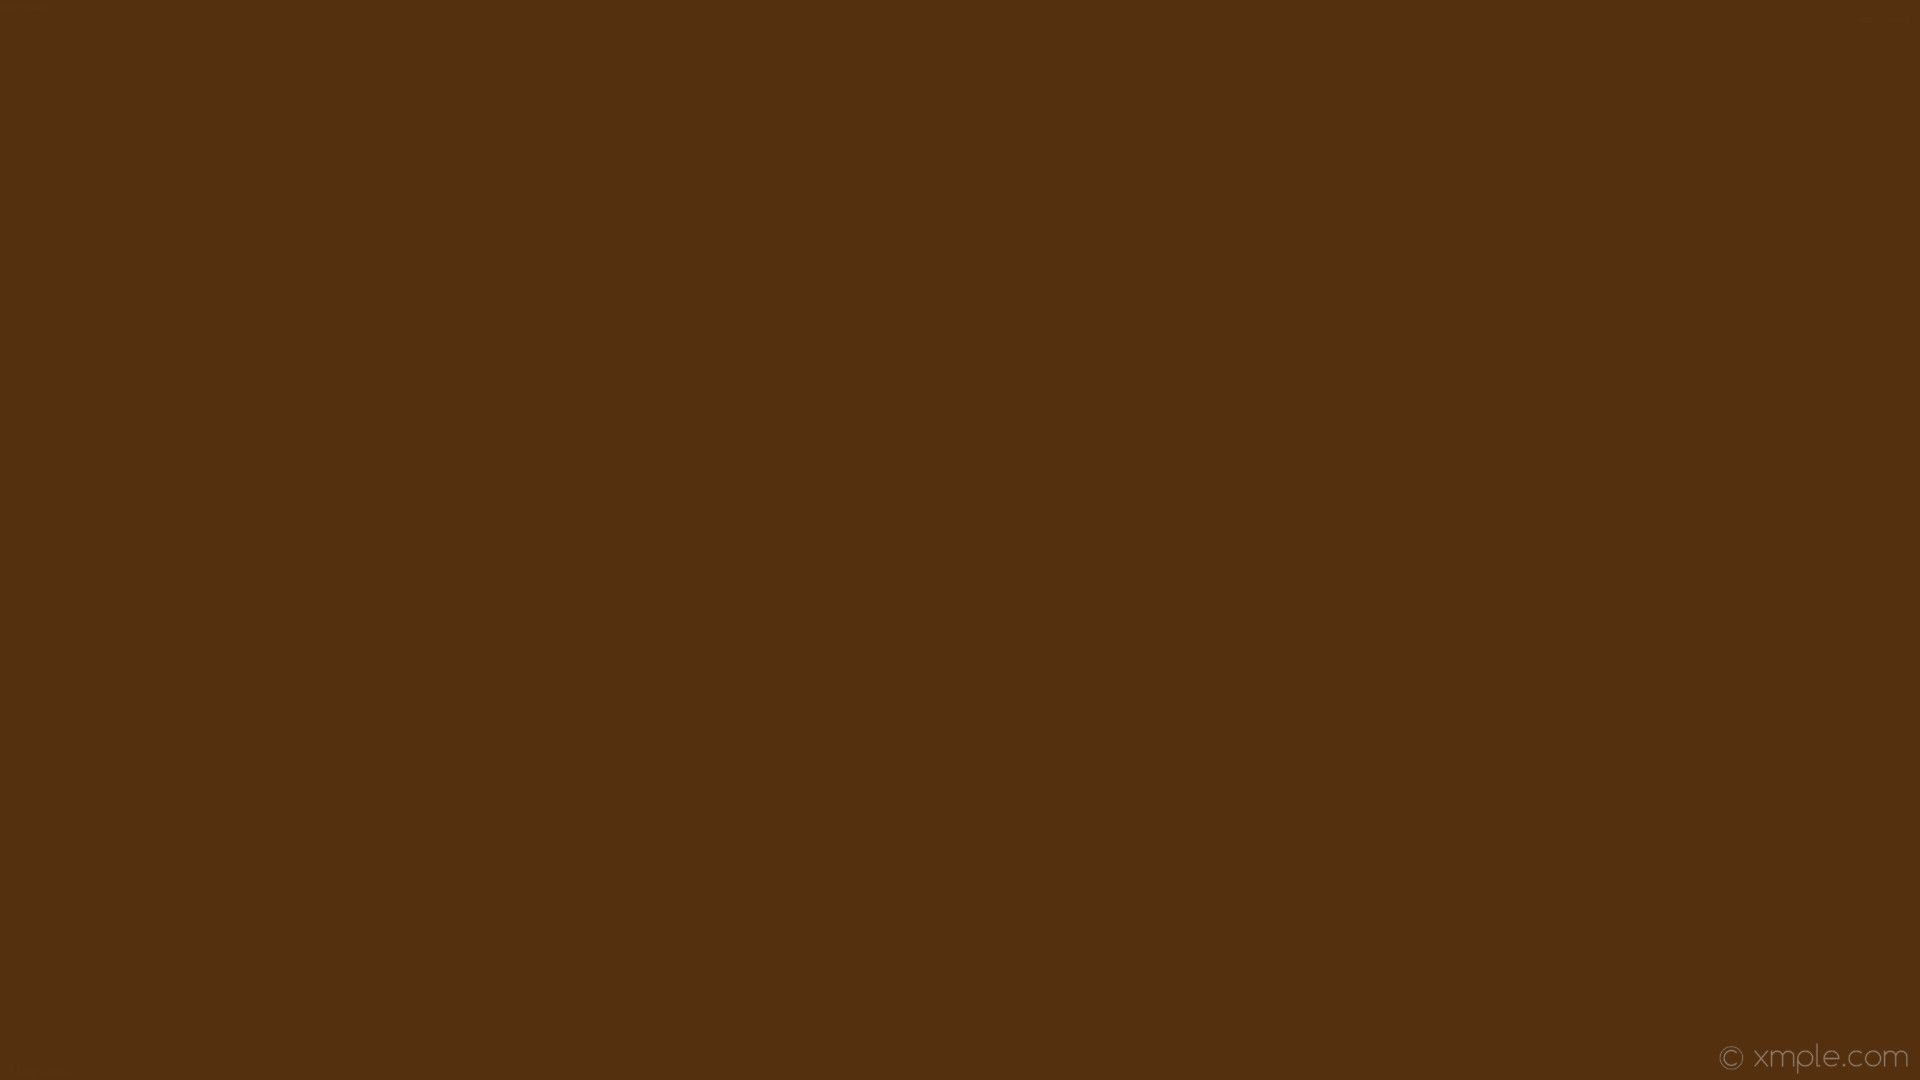 Solid Brown Wallpapers   Top Solid Brown Backgrounds 1920x1080